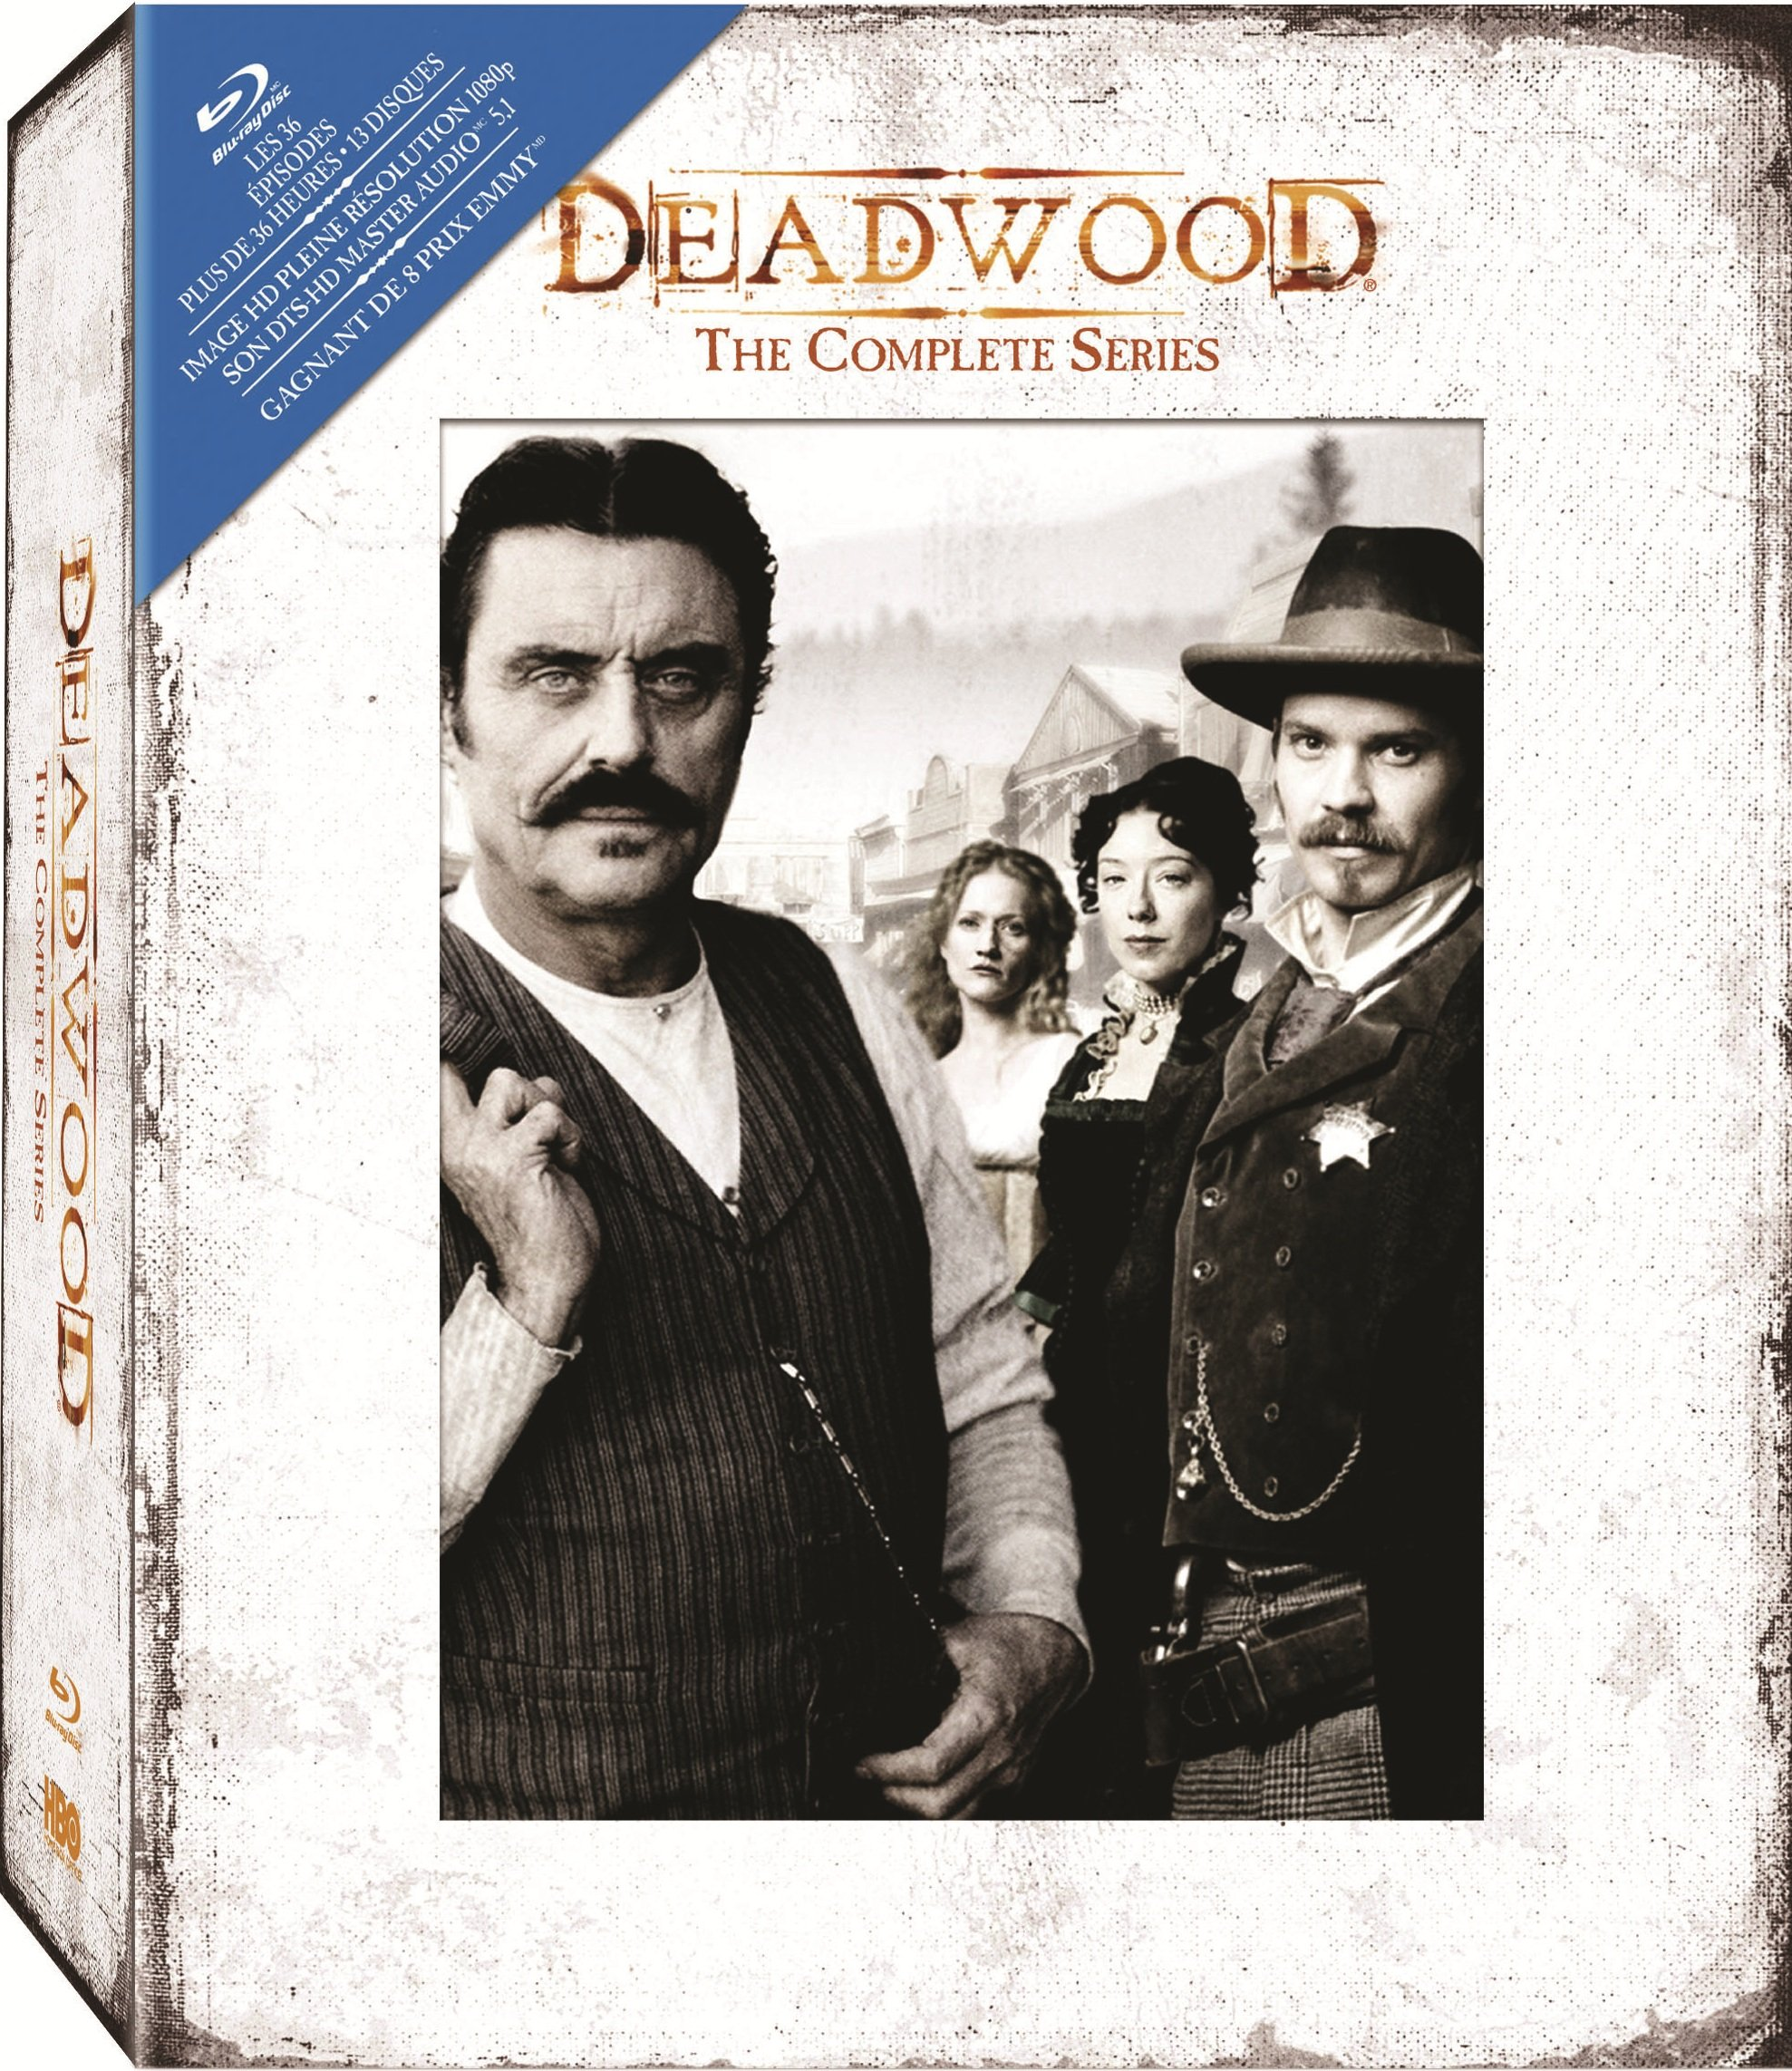 Deadwood: The Complete Series (BD) [Blu-ray] by HBO Home Video